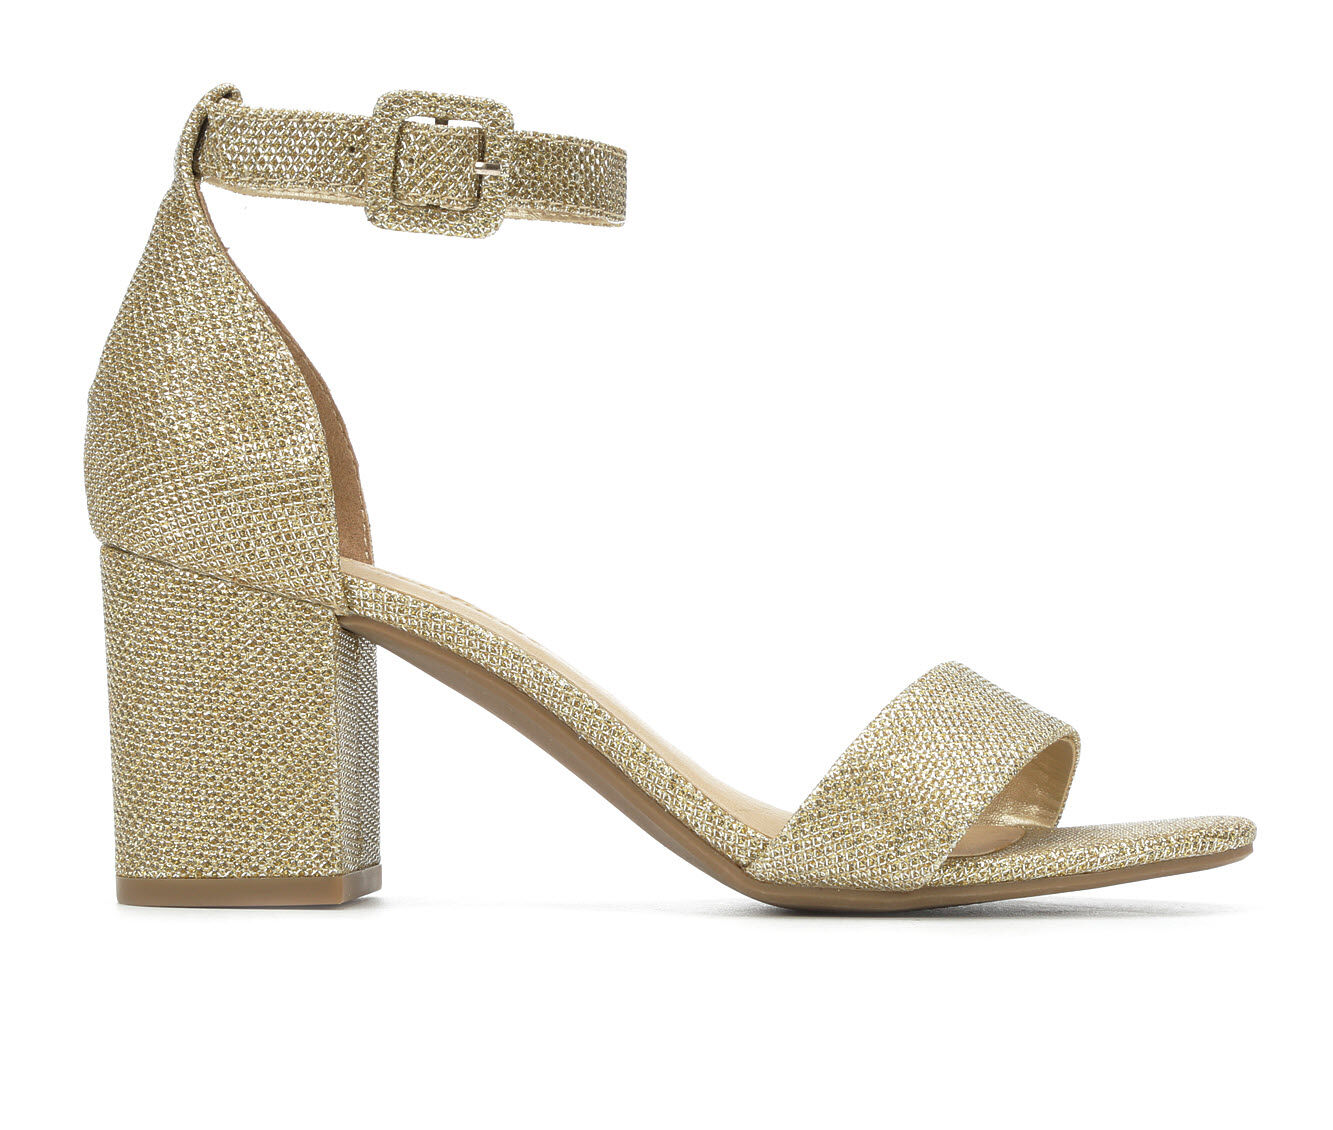 New Fashion Women's City Classified Cake Heeled Sandals Lt Gold Shimmer